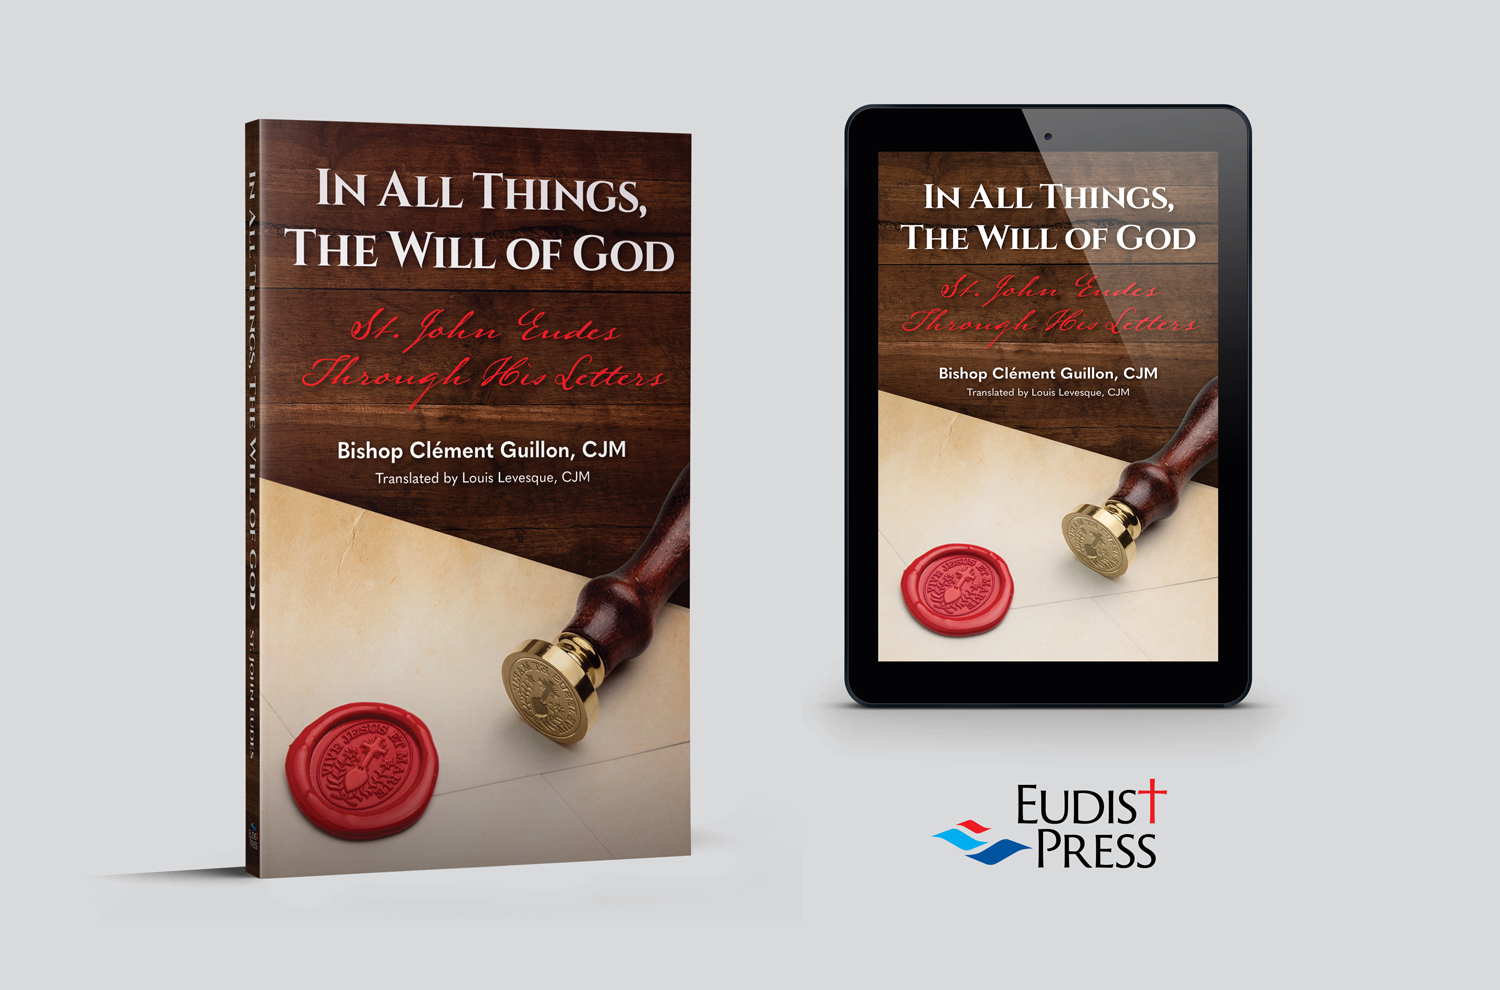 In All Things, The Will of God: St. John Eudes Through His Letters